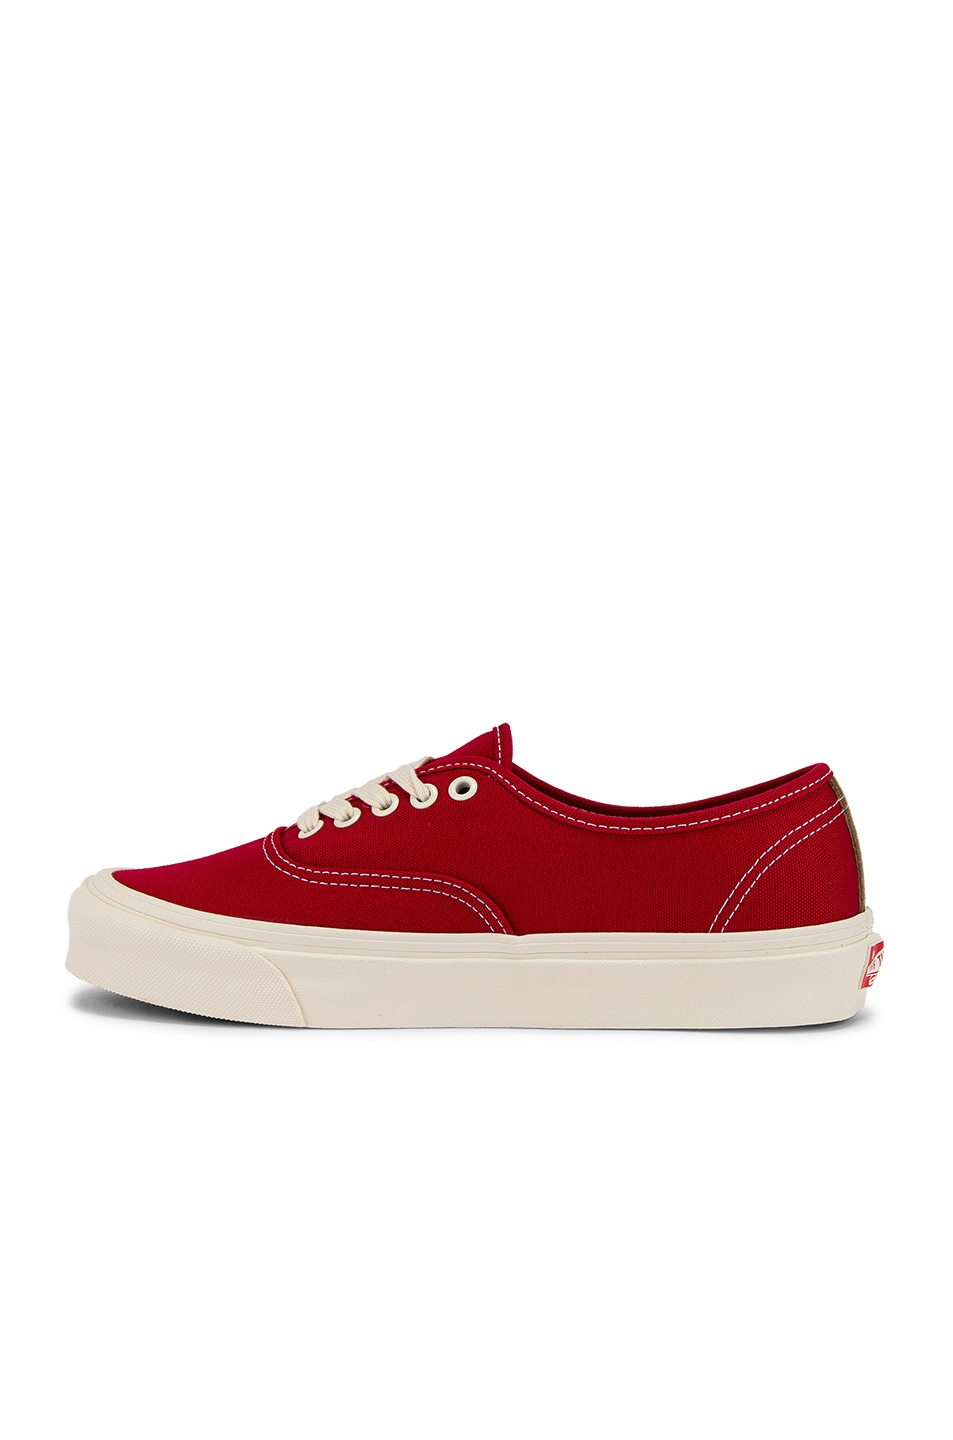 Image 5 of Vans Vault OG Authentic LX in Chili Pepper & Teak